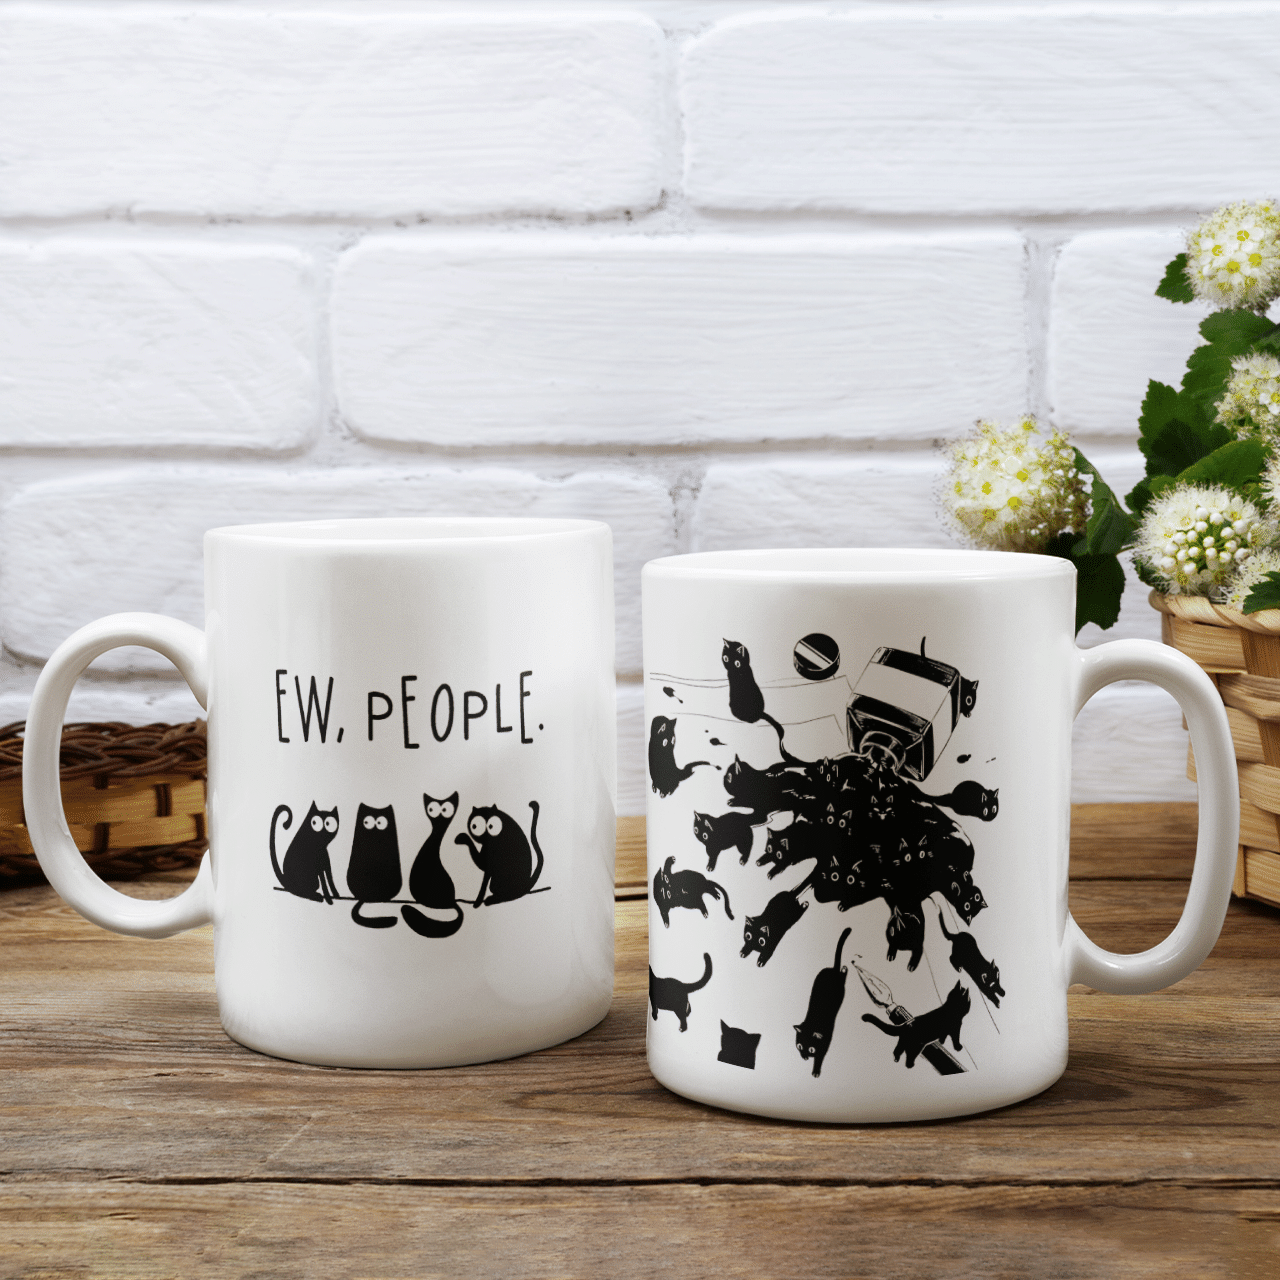 Ew, people - Two side Mug